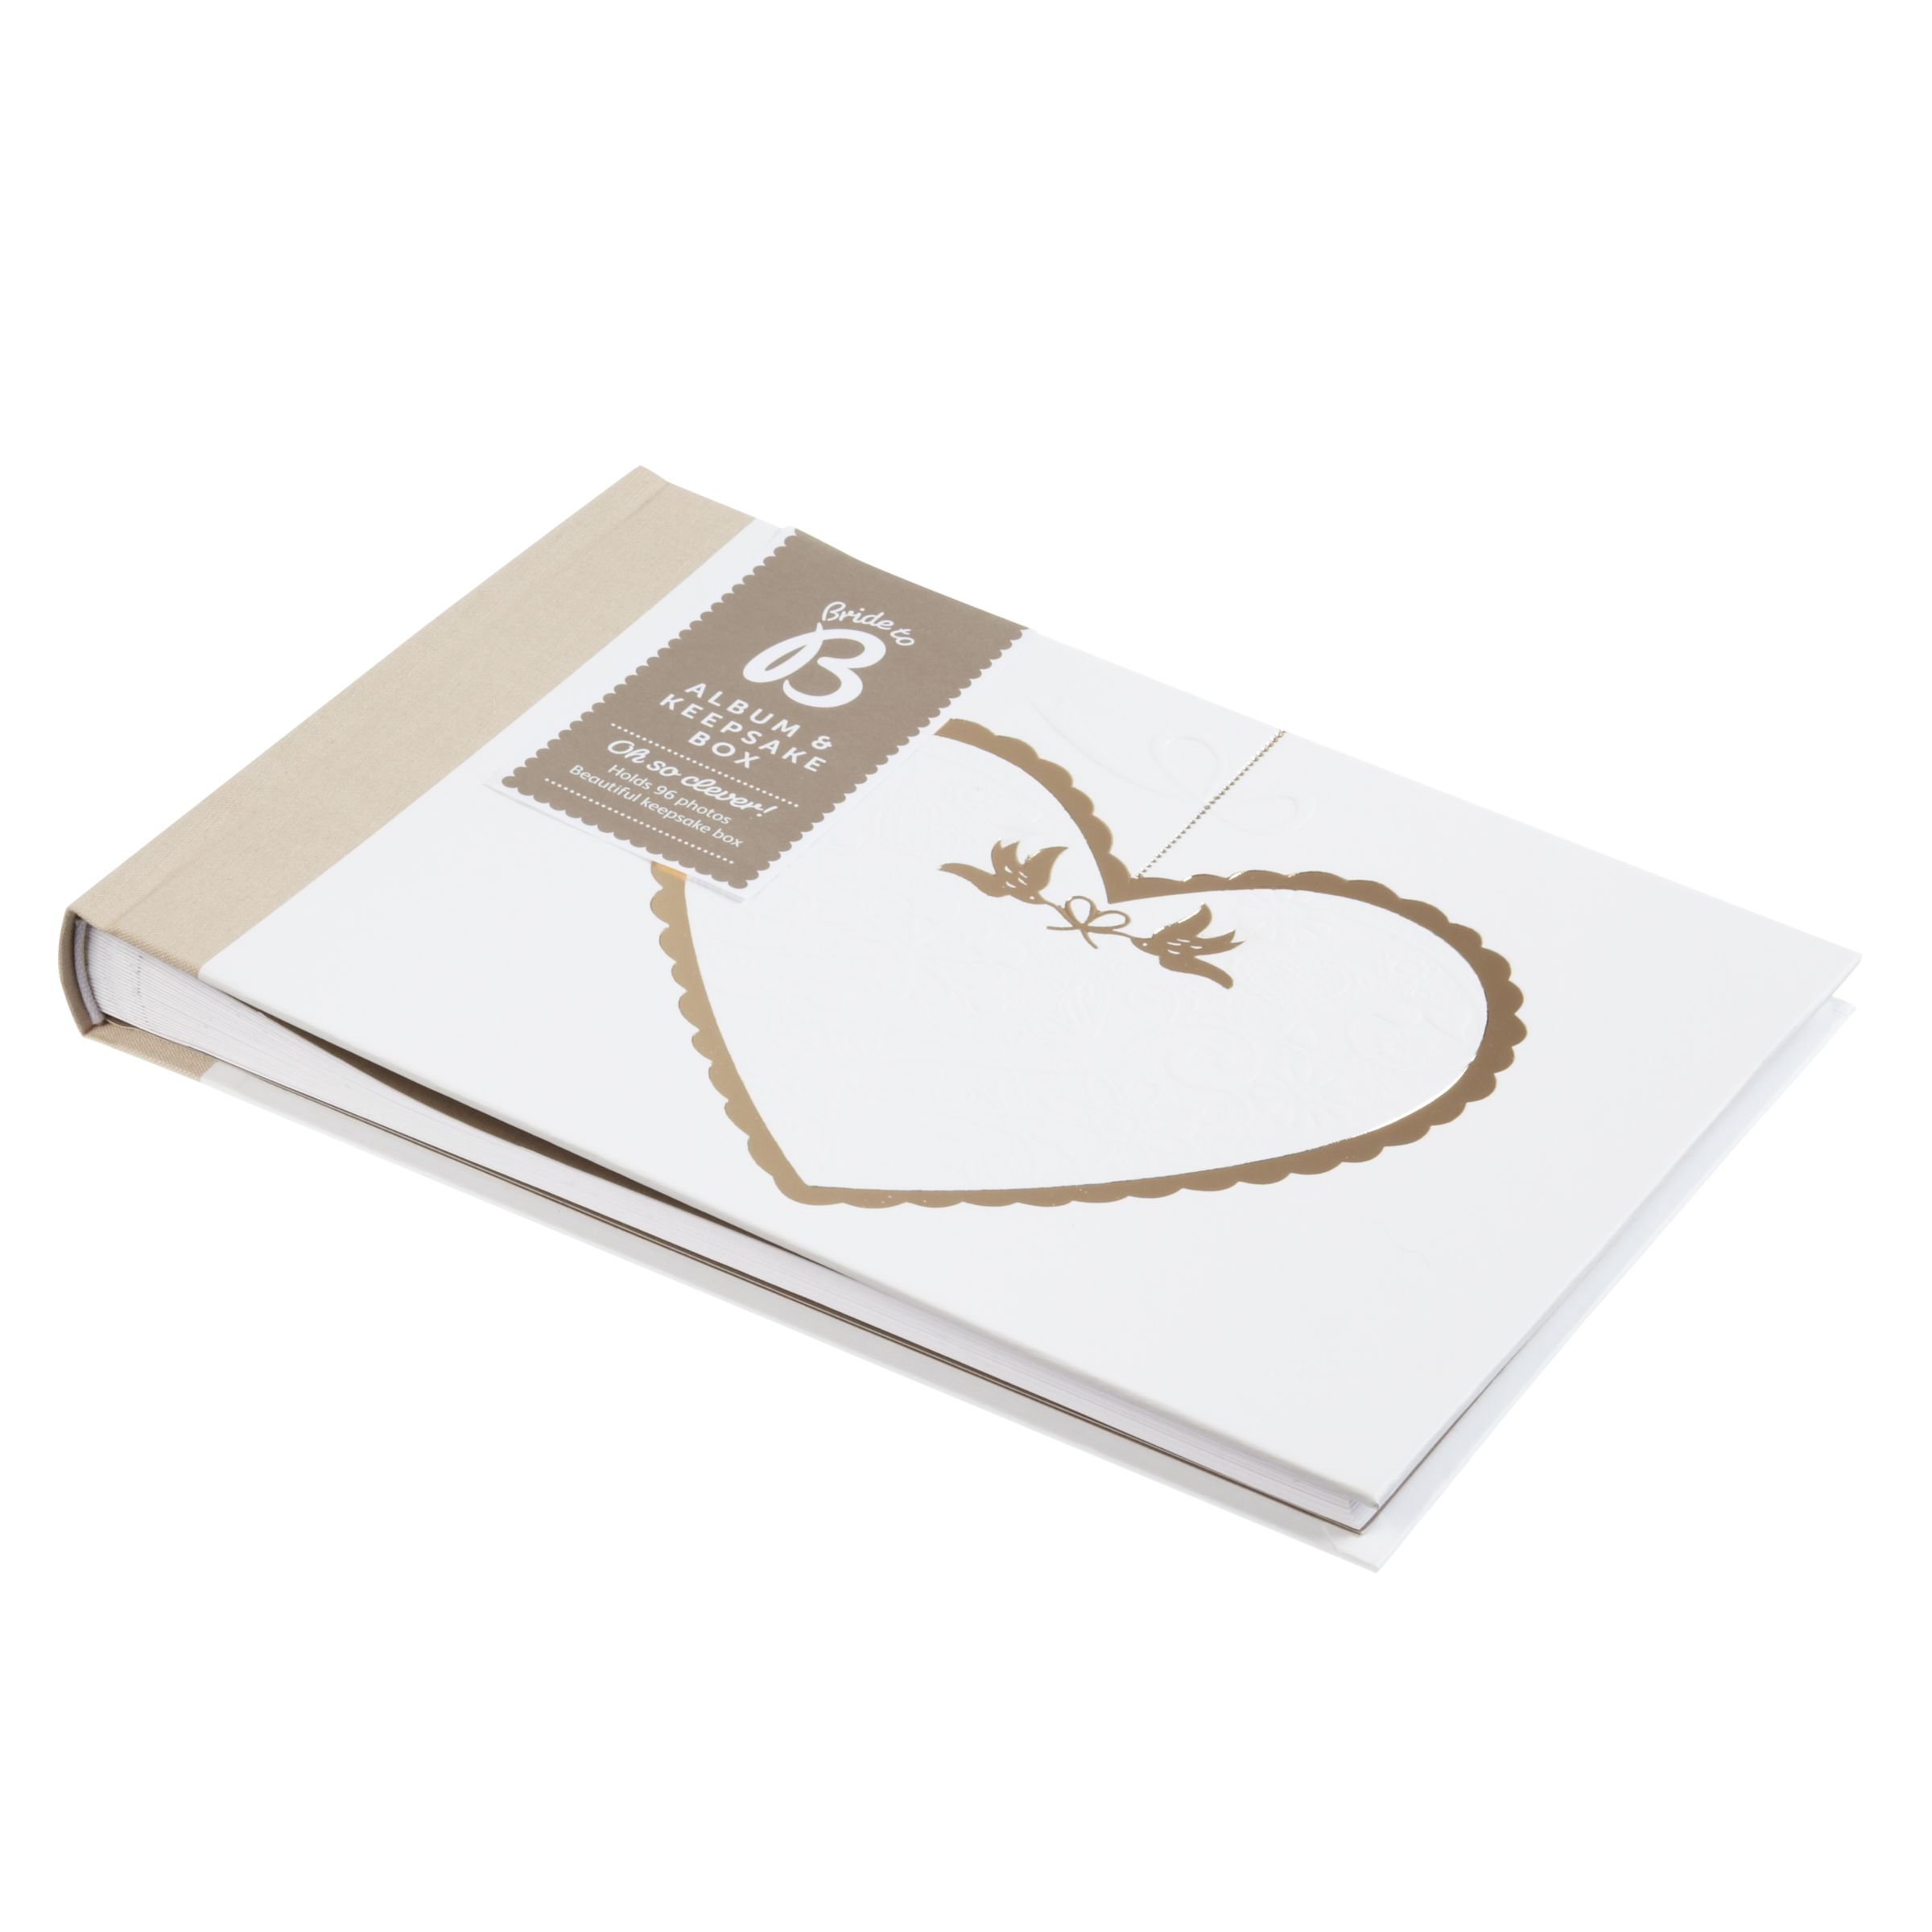 Buy cheap Box for wedding album - compare Anniversary Gifts prices for ...